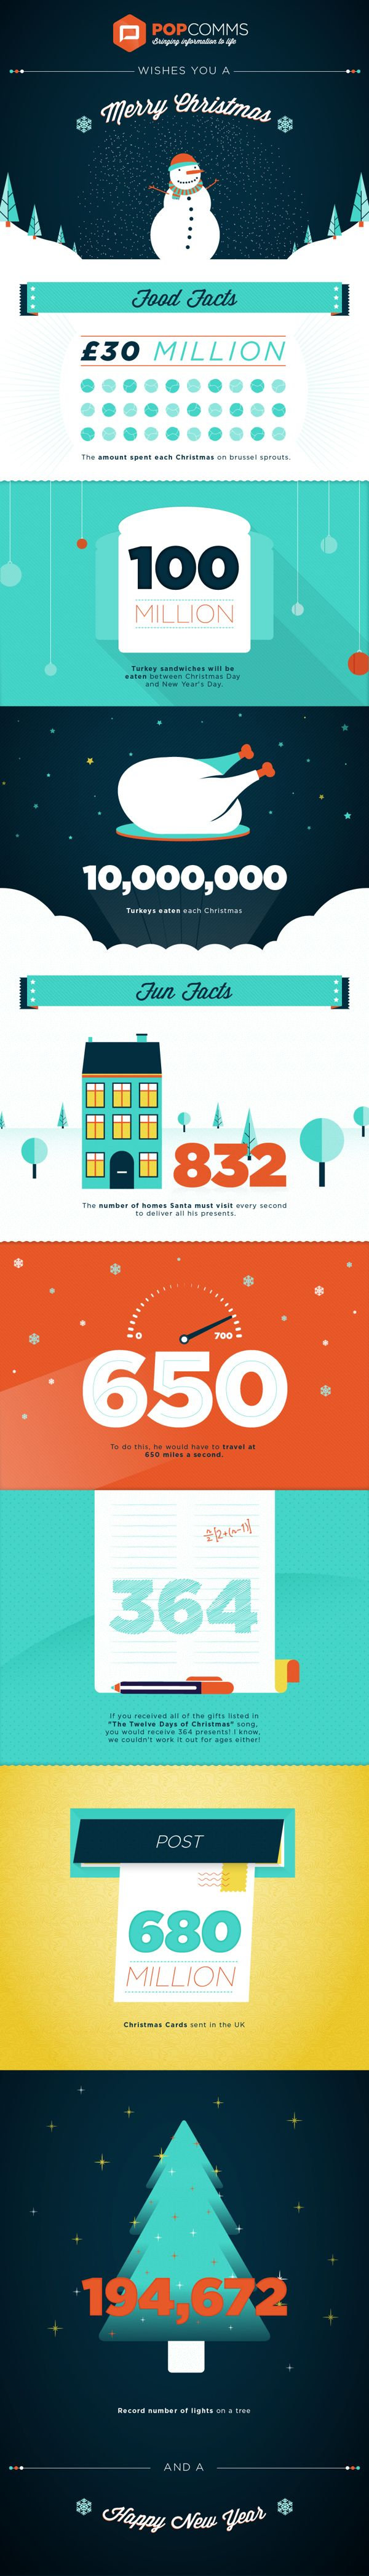 POPcomms christmas e-card infographic by Nick Kelly, via Behance